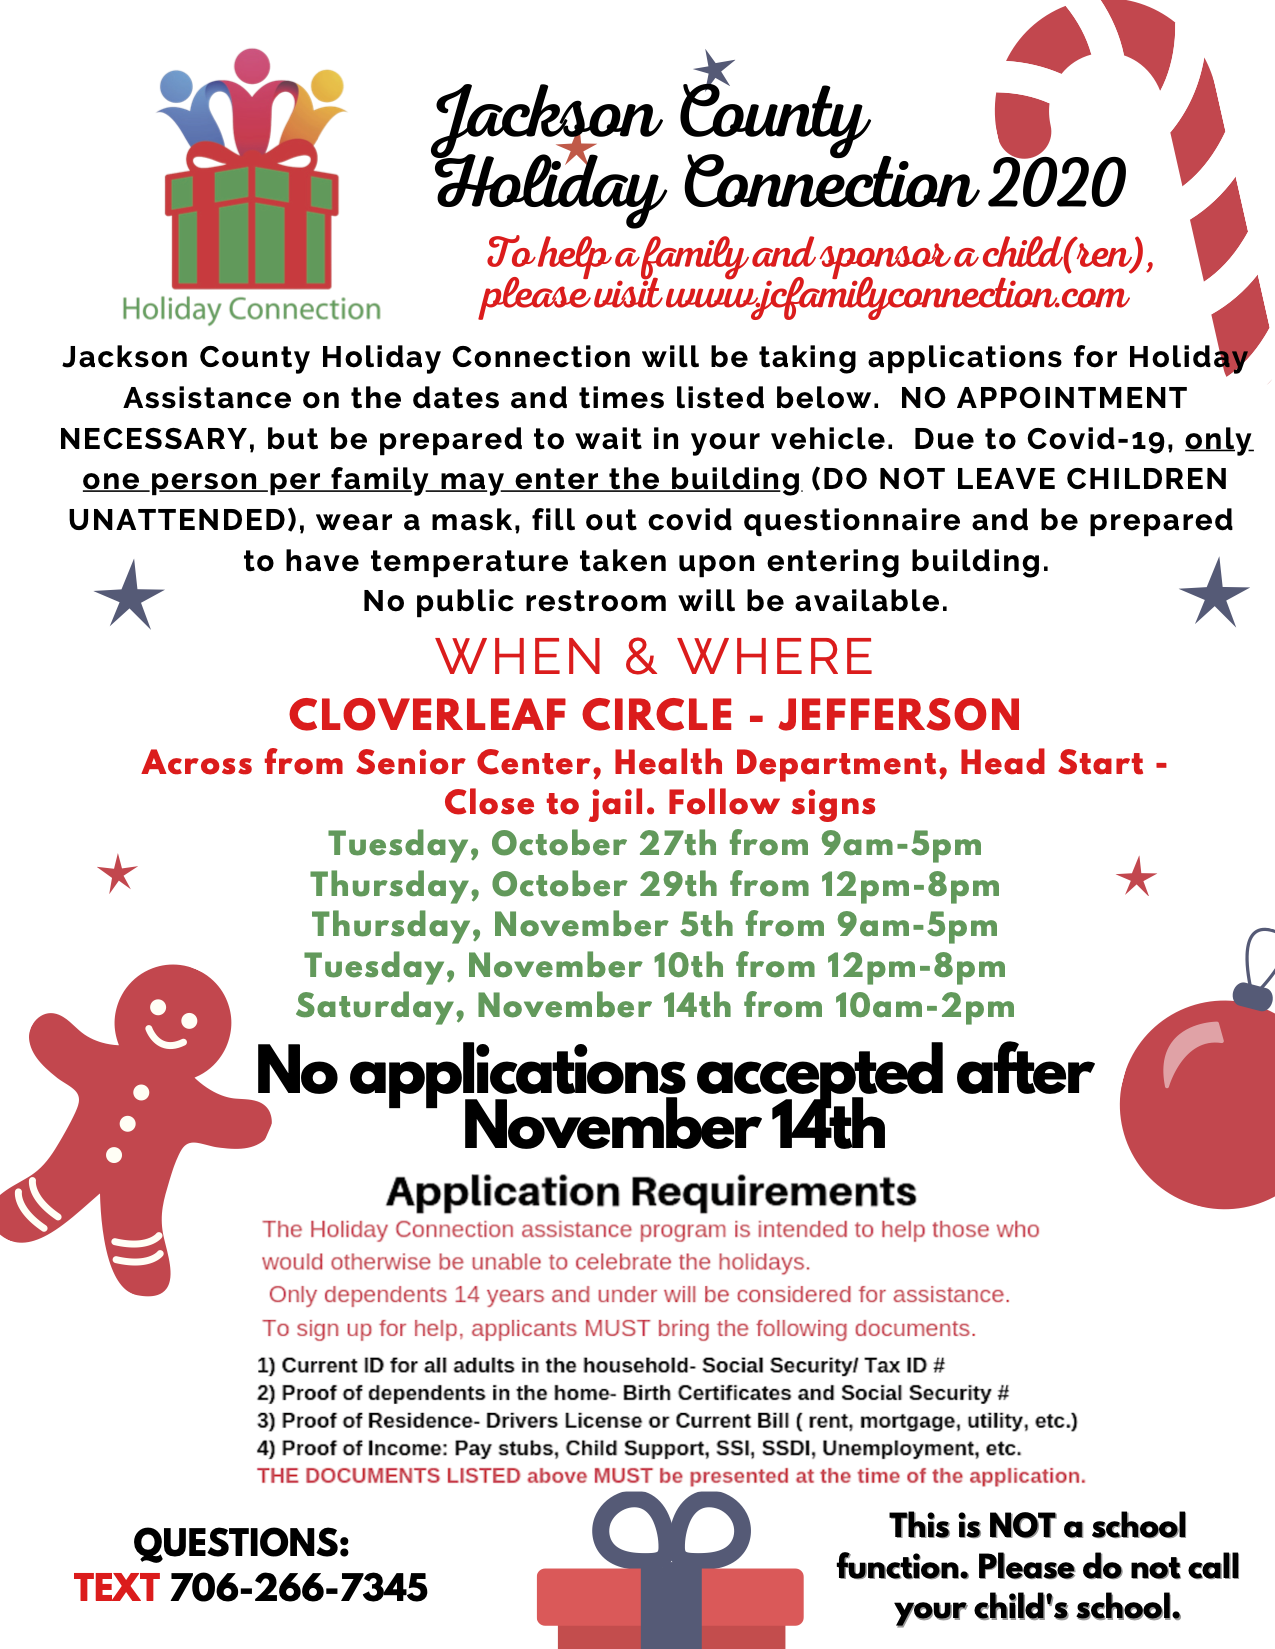 Jackson County Family Connection Holiday Assistance